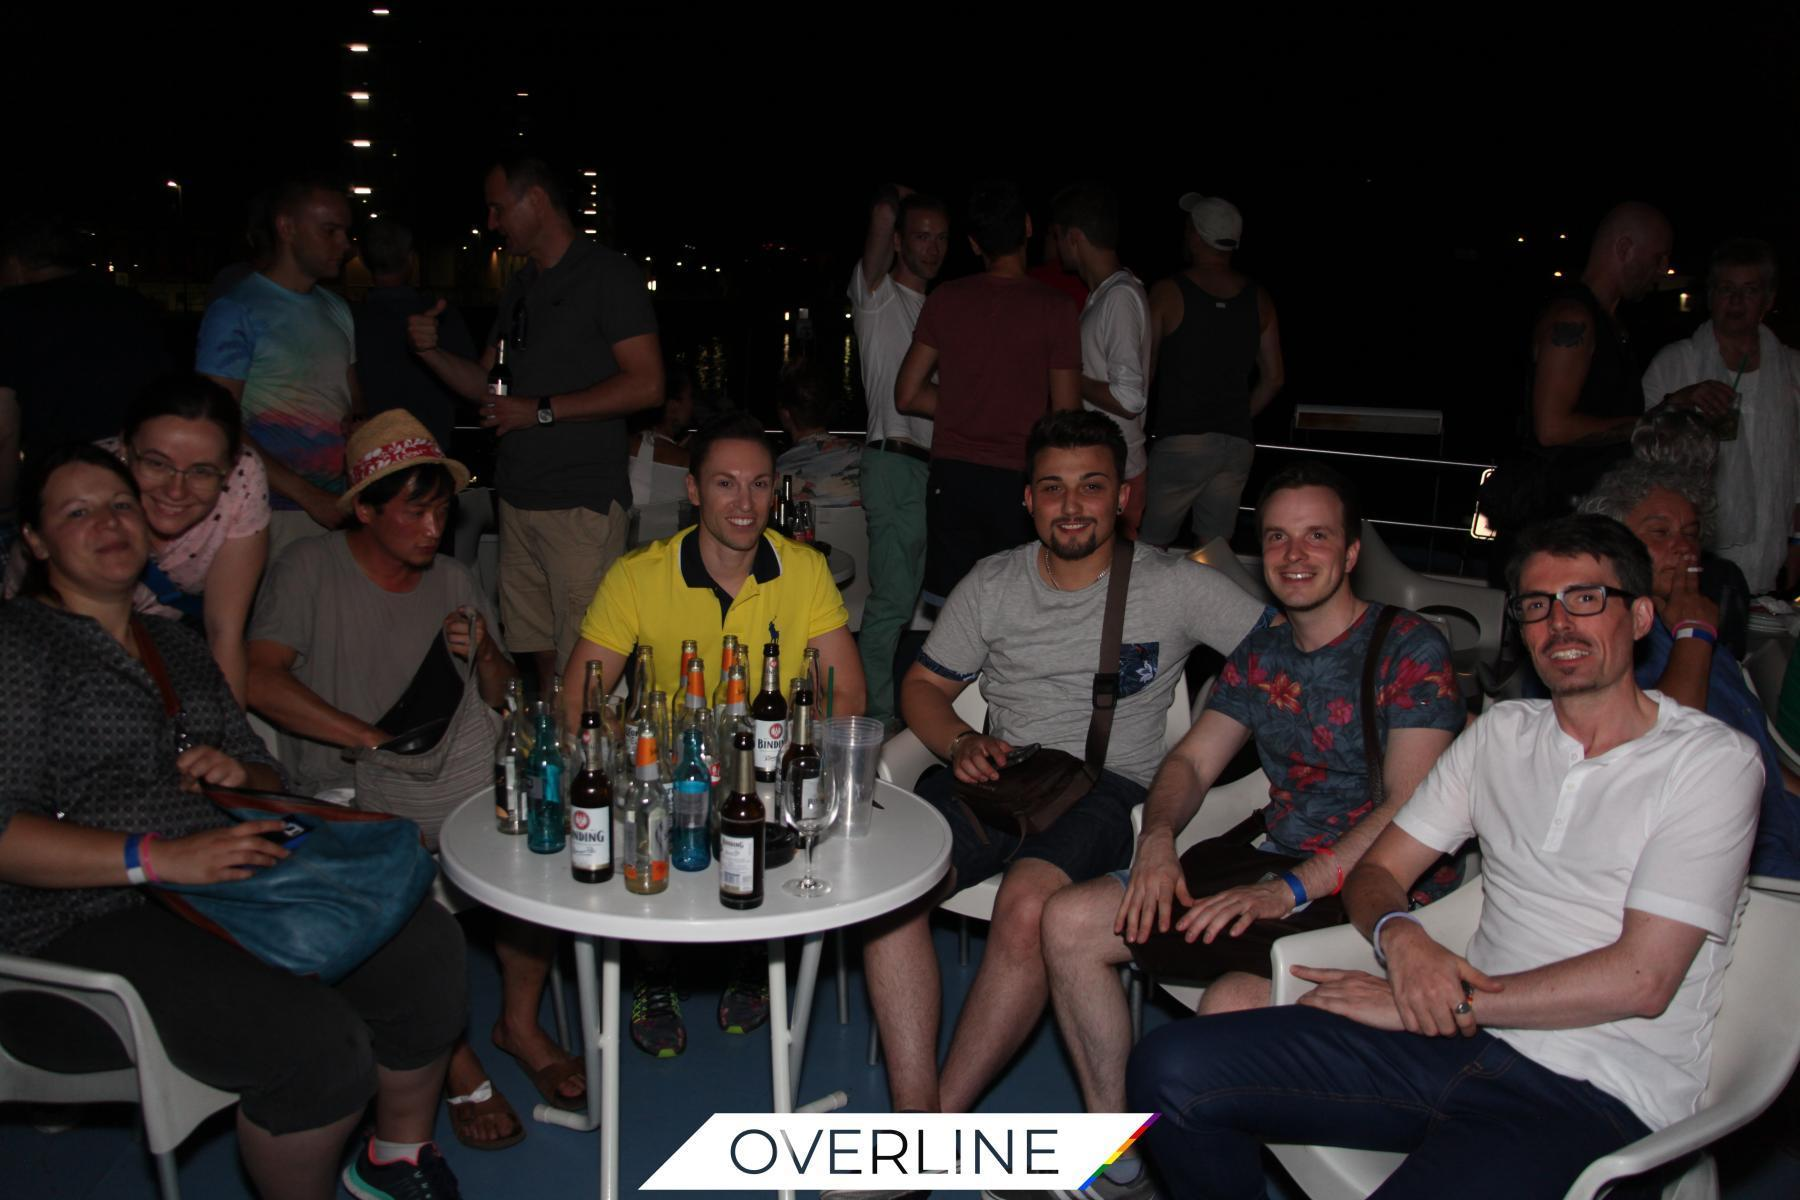 FVV Bootparty 26.8.2016